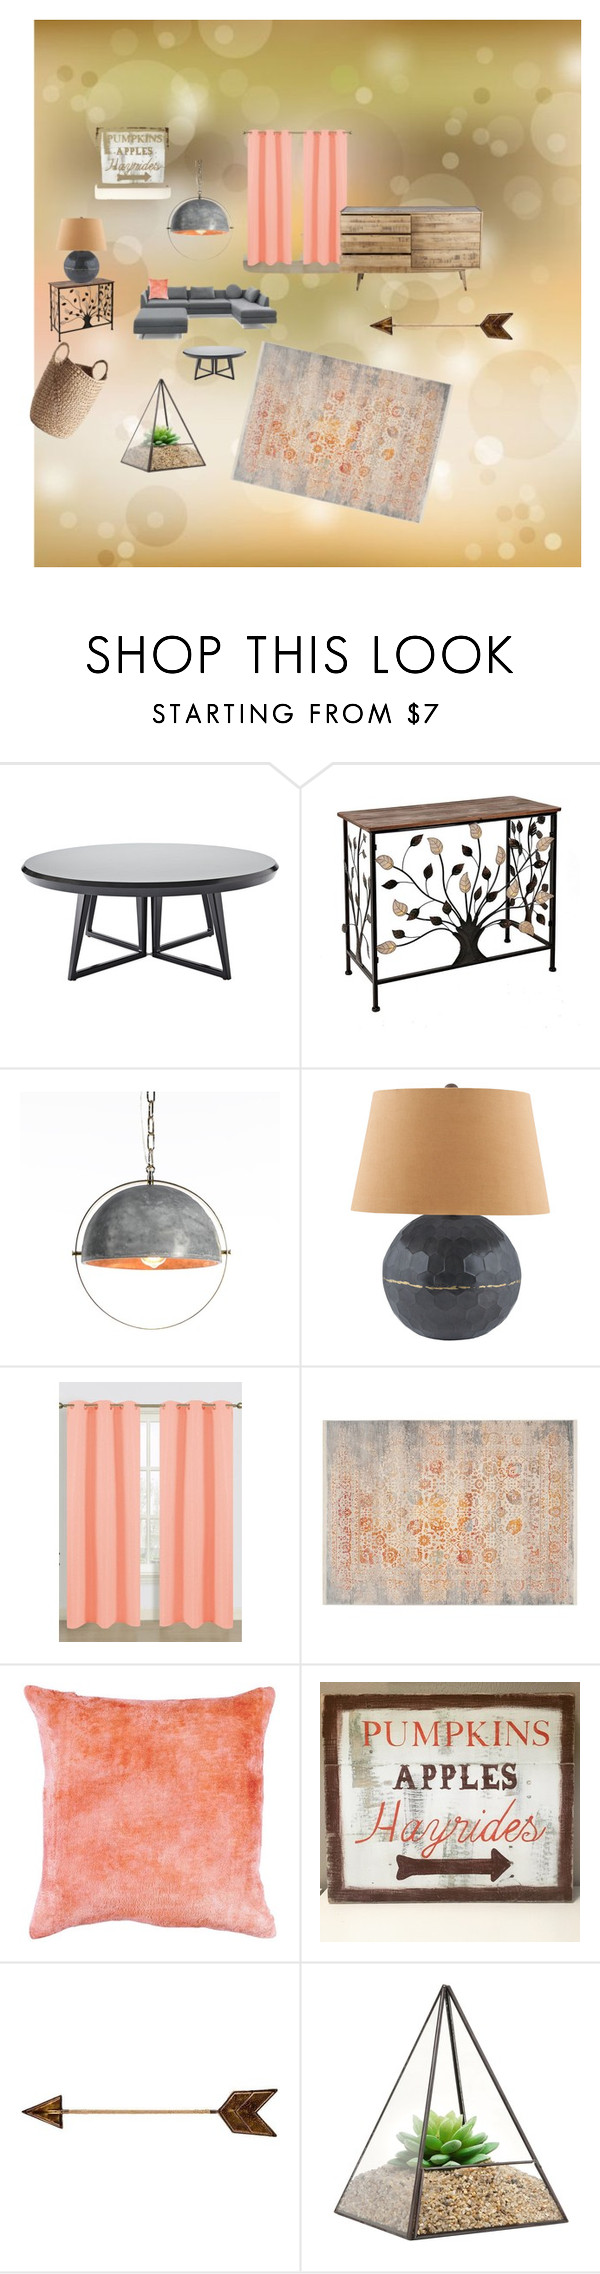 """Soft Start of Fall"" by gena-june on Polyvore featuring interior, interiors, interior design, home, home decor, interior decorating, Serena & Lily, West Elm, Lazy Susan and Safavieh"